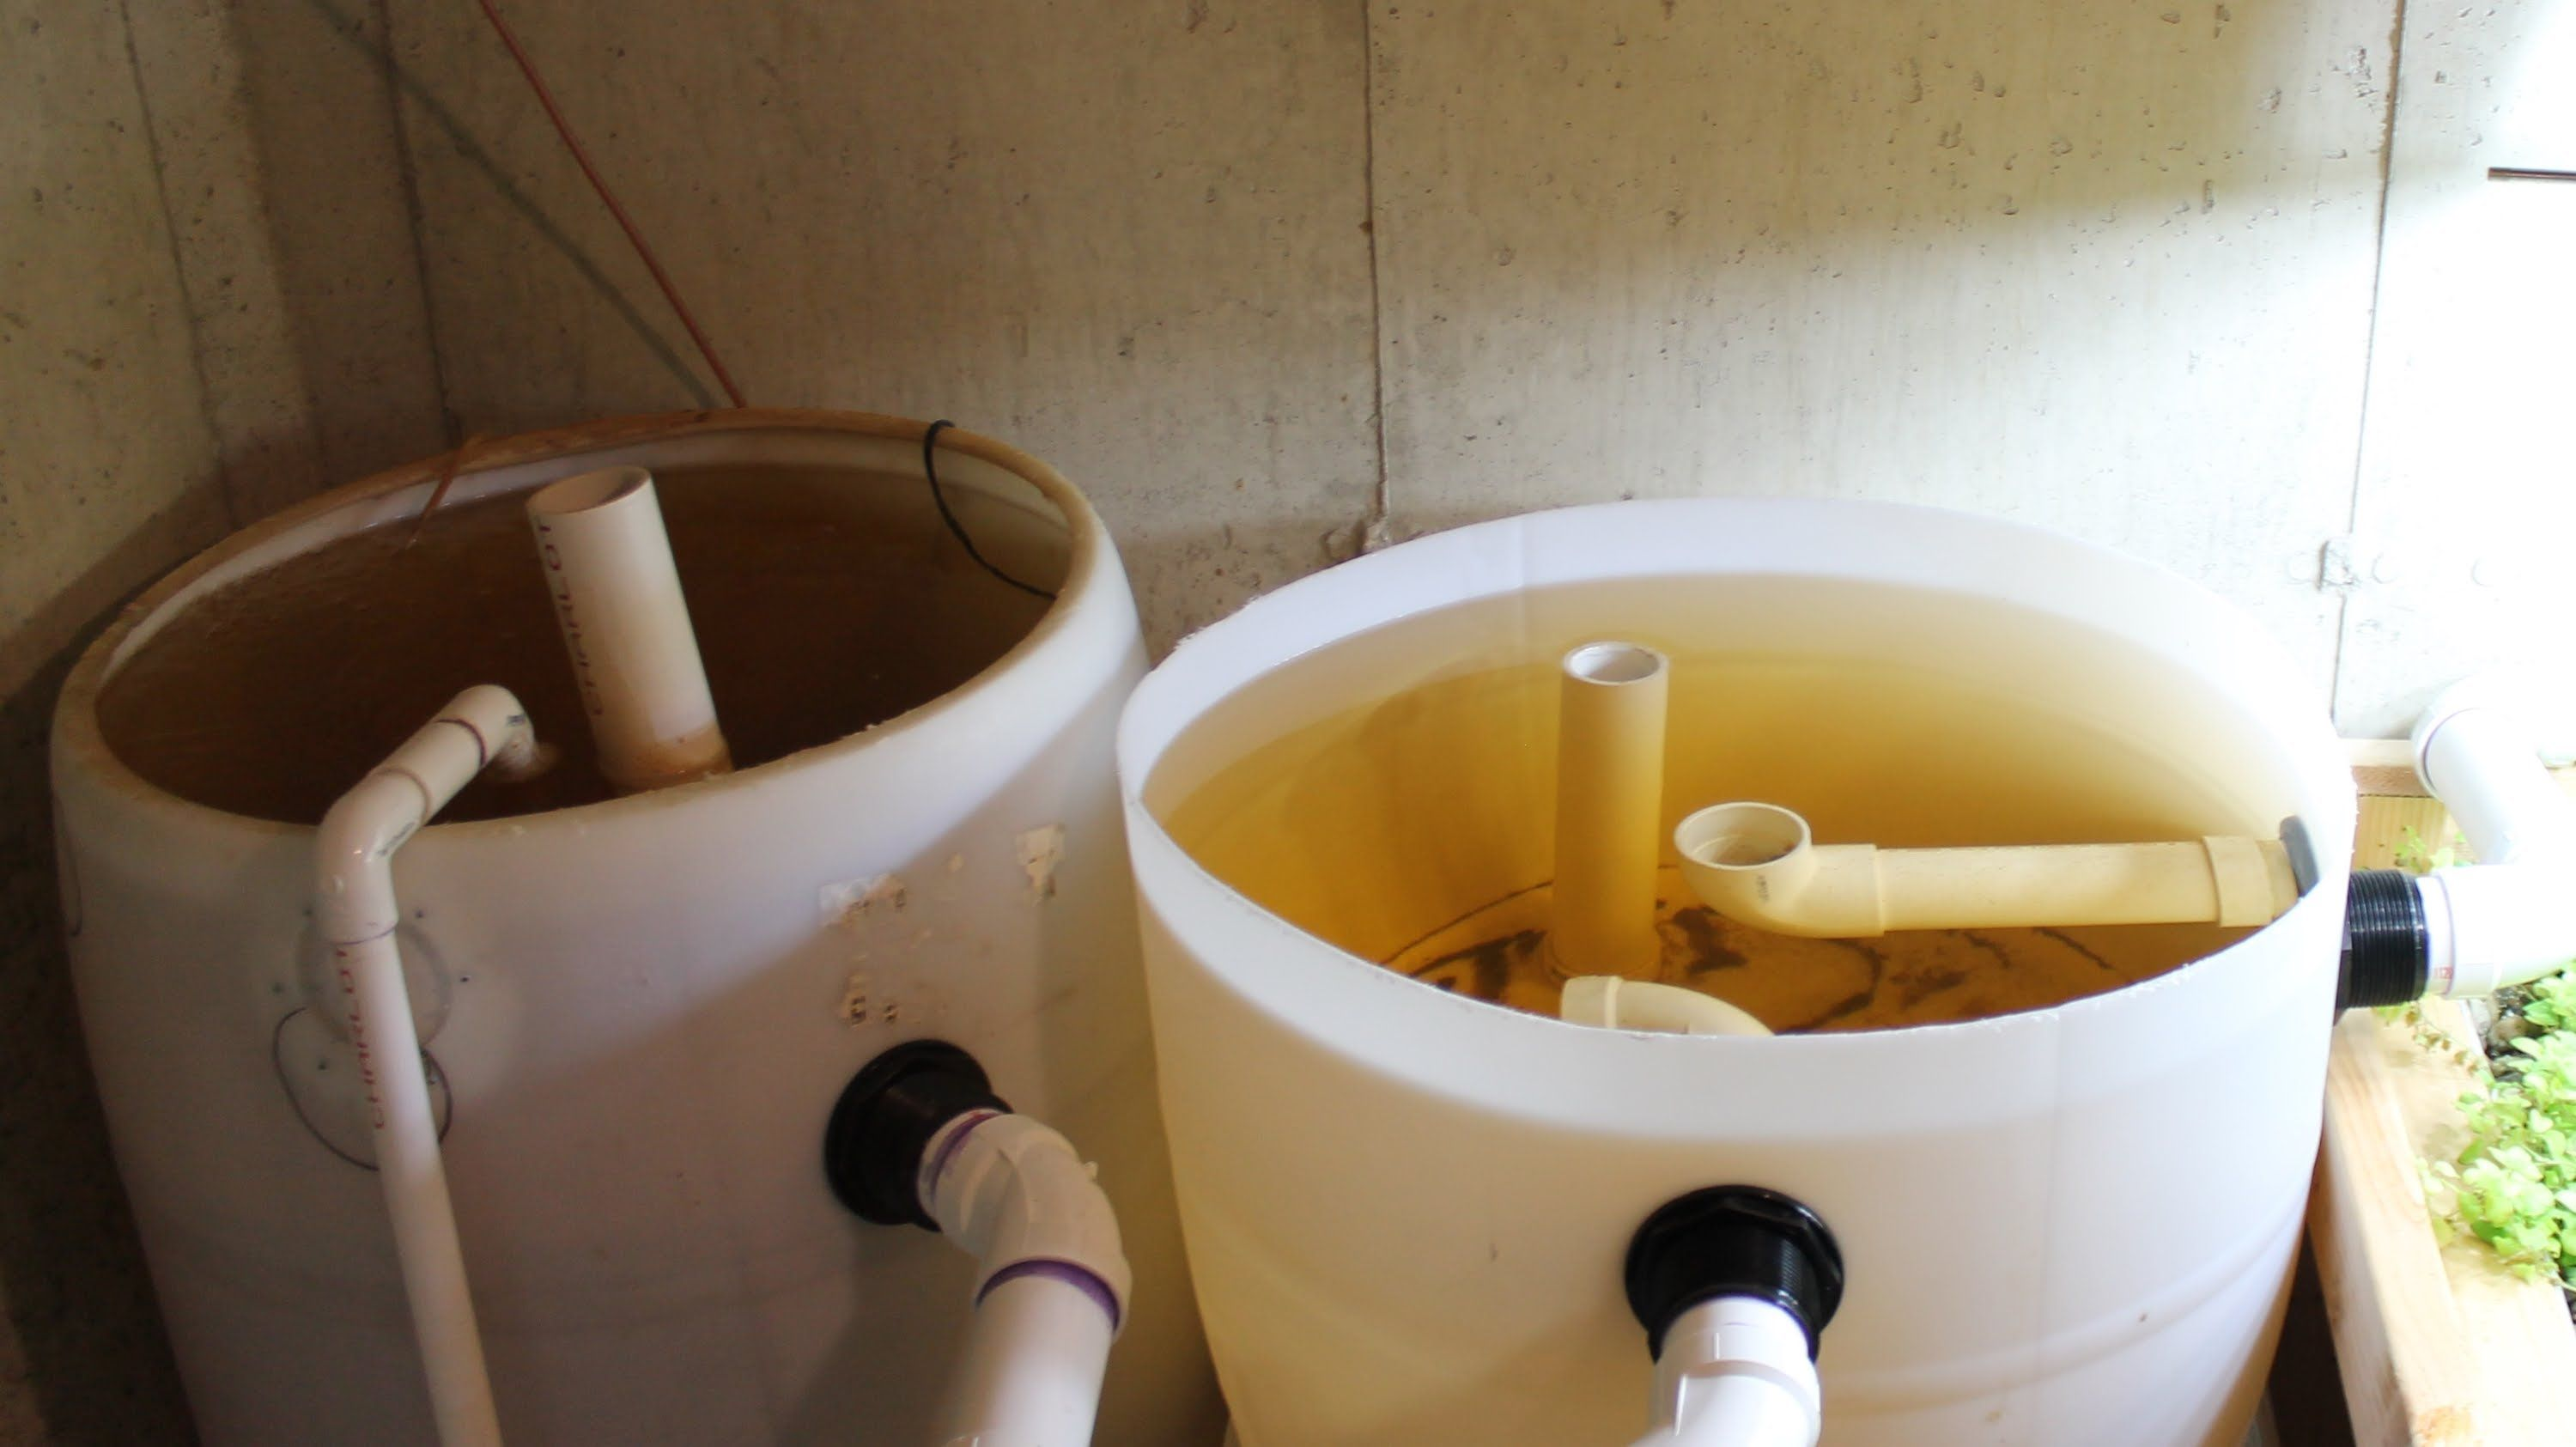 Aquaponics Using A Swirl Filter To Remove Solid Waste